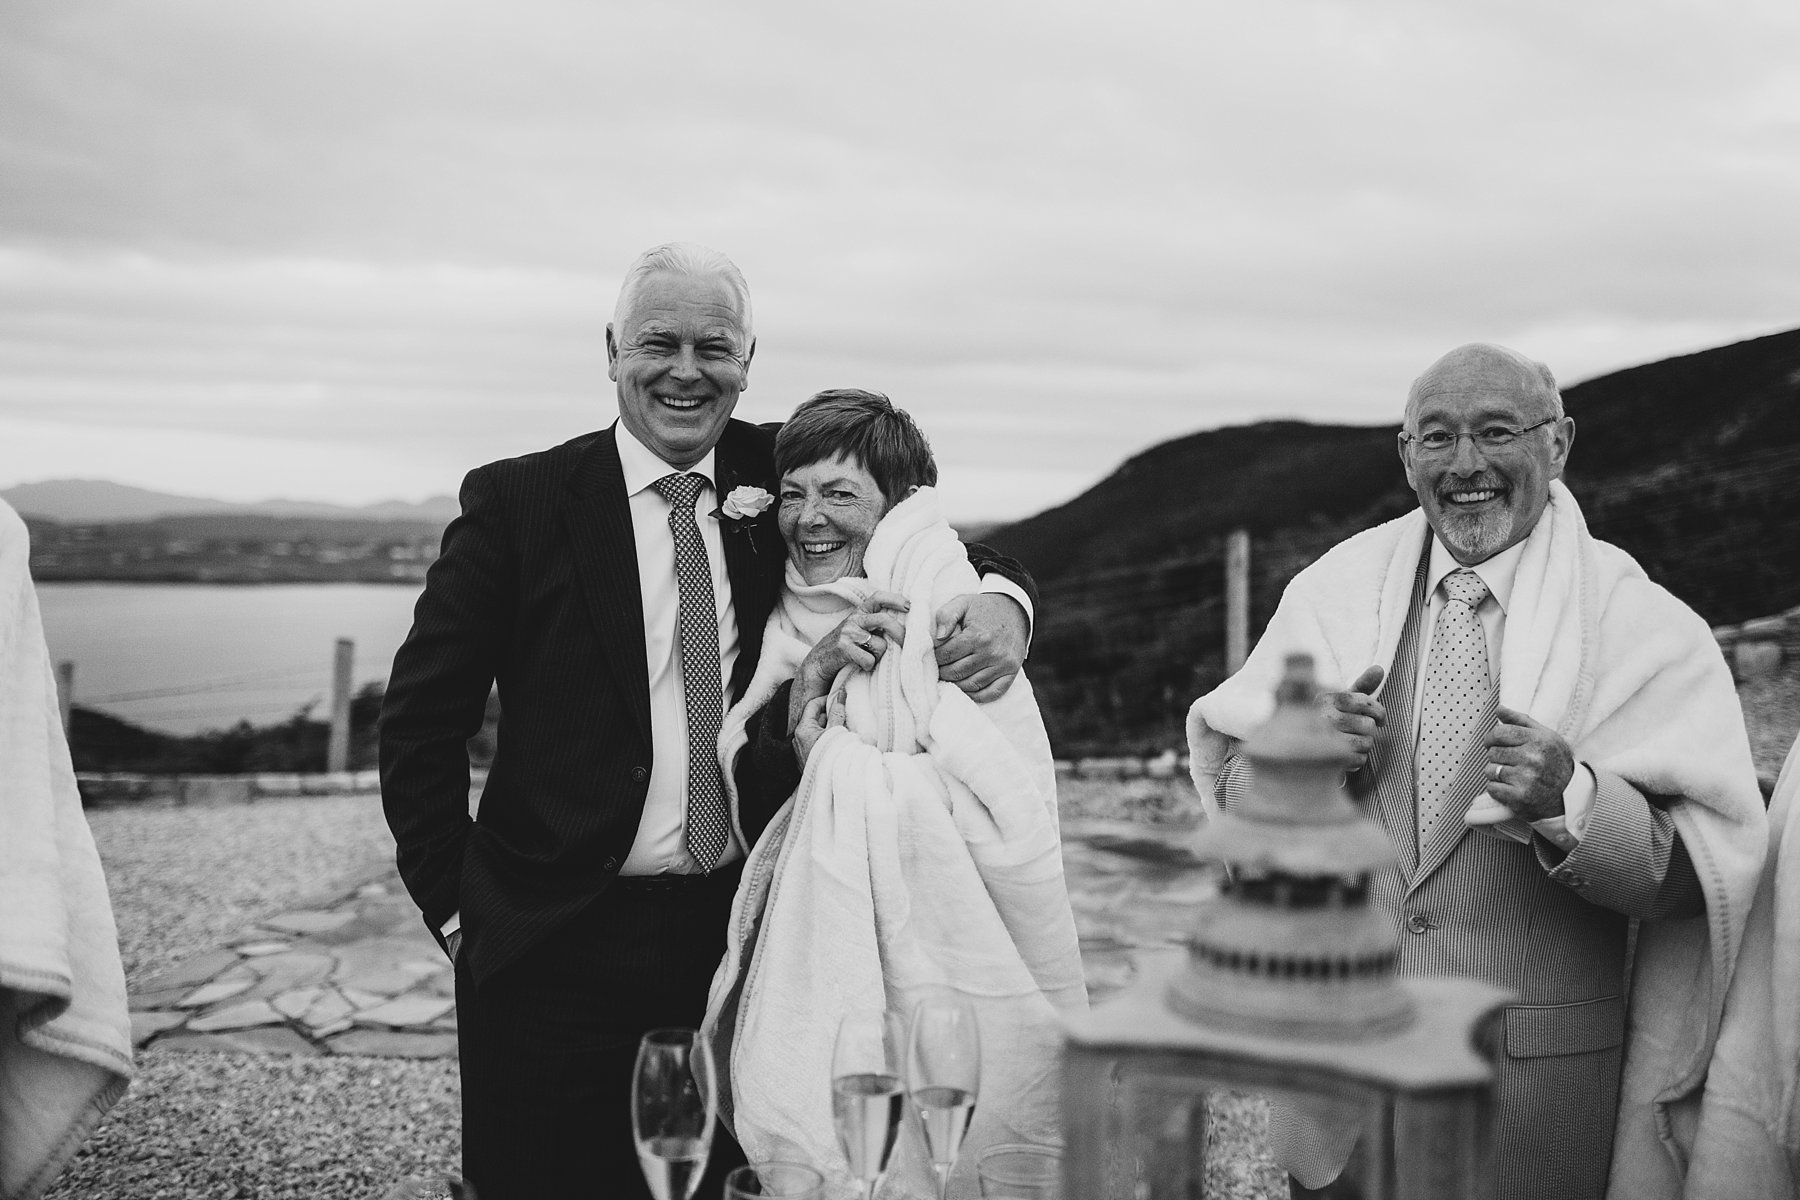 hornhead_donegak_elopement_weddings_0095